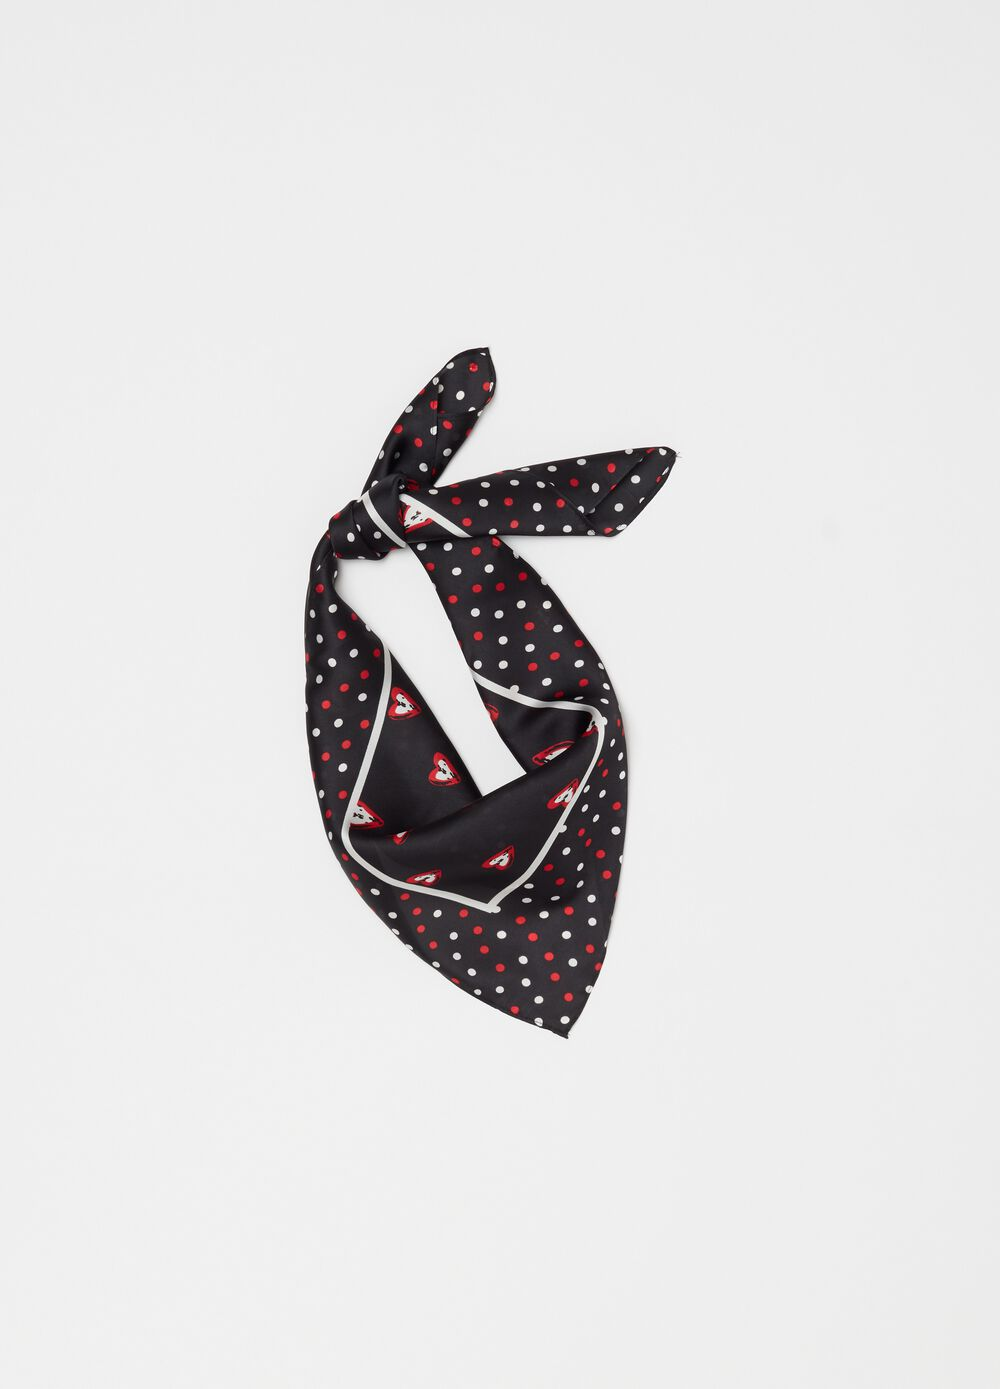 Foulard with polka dots and hearts pattern